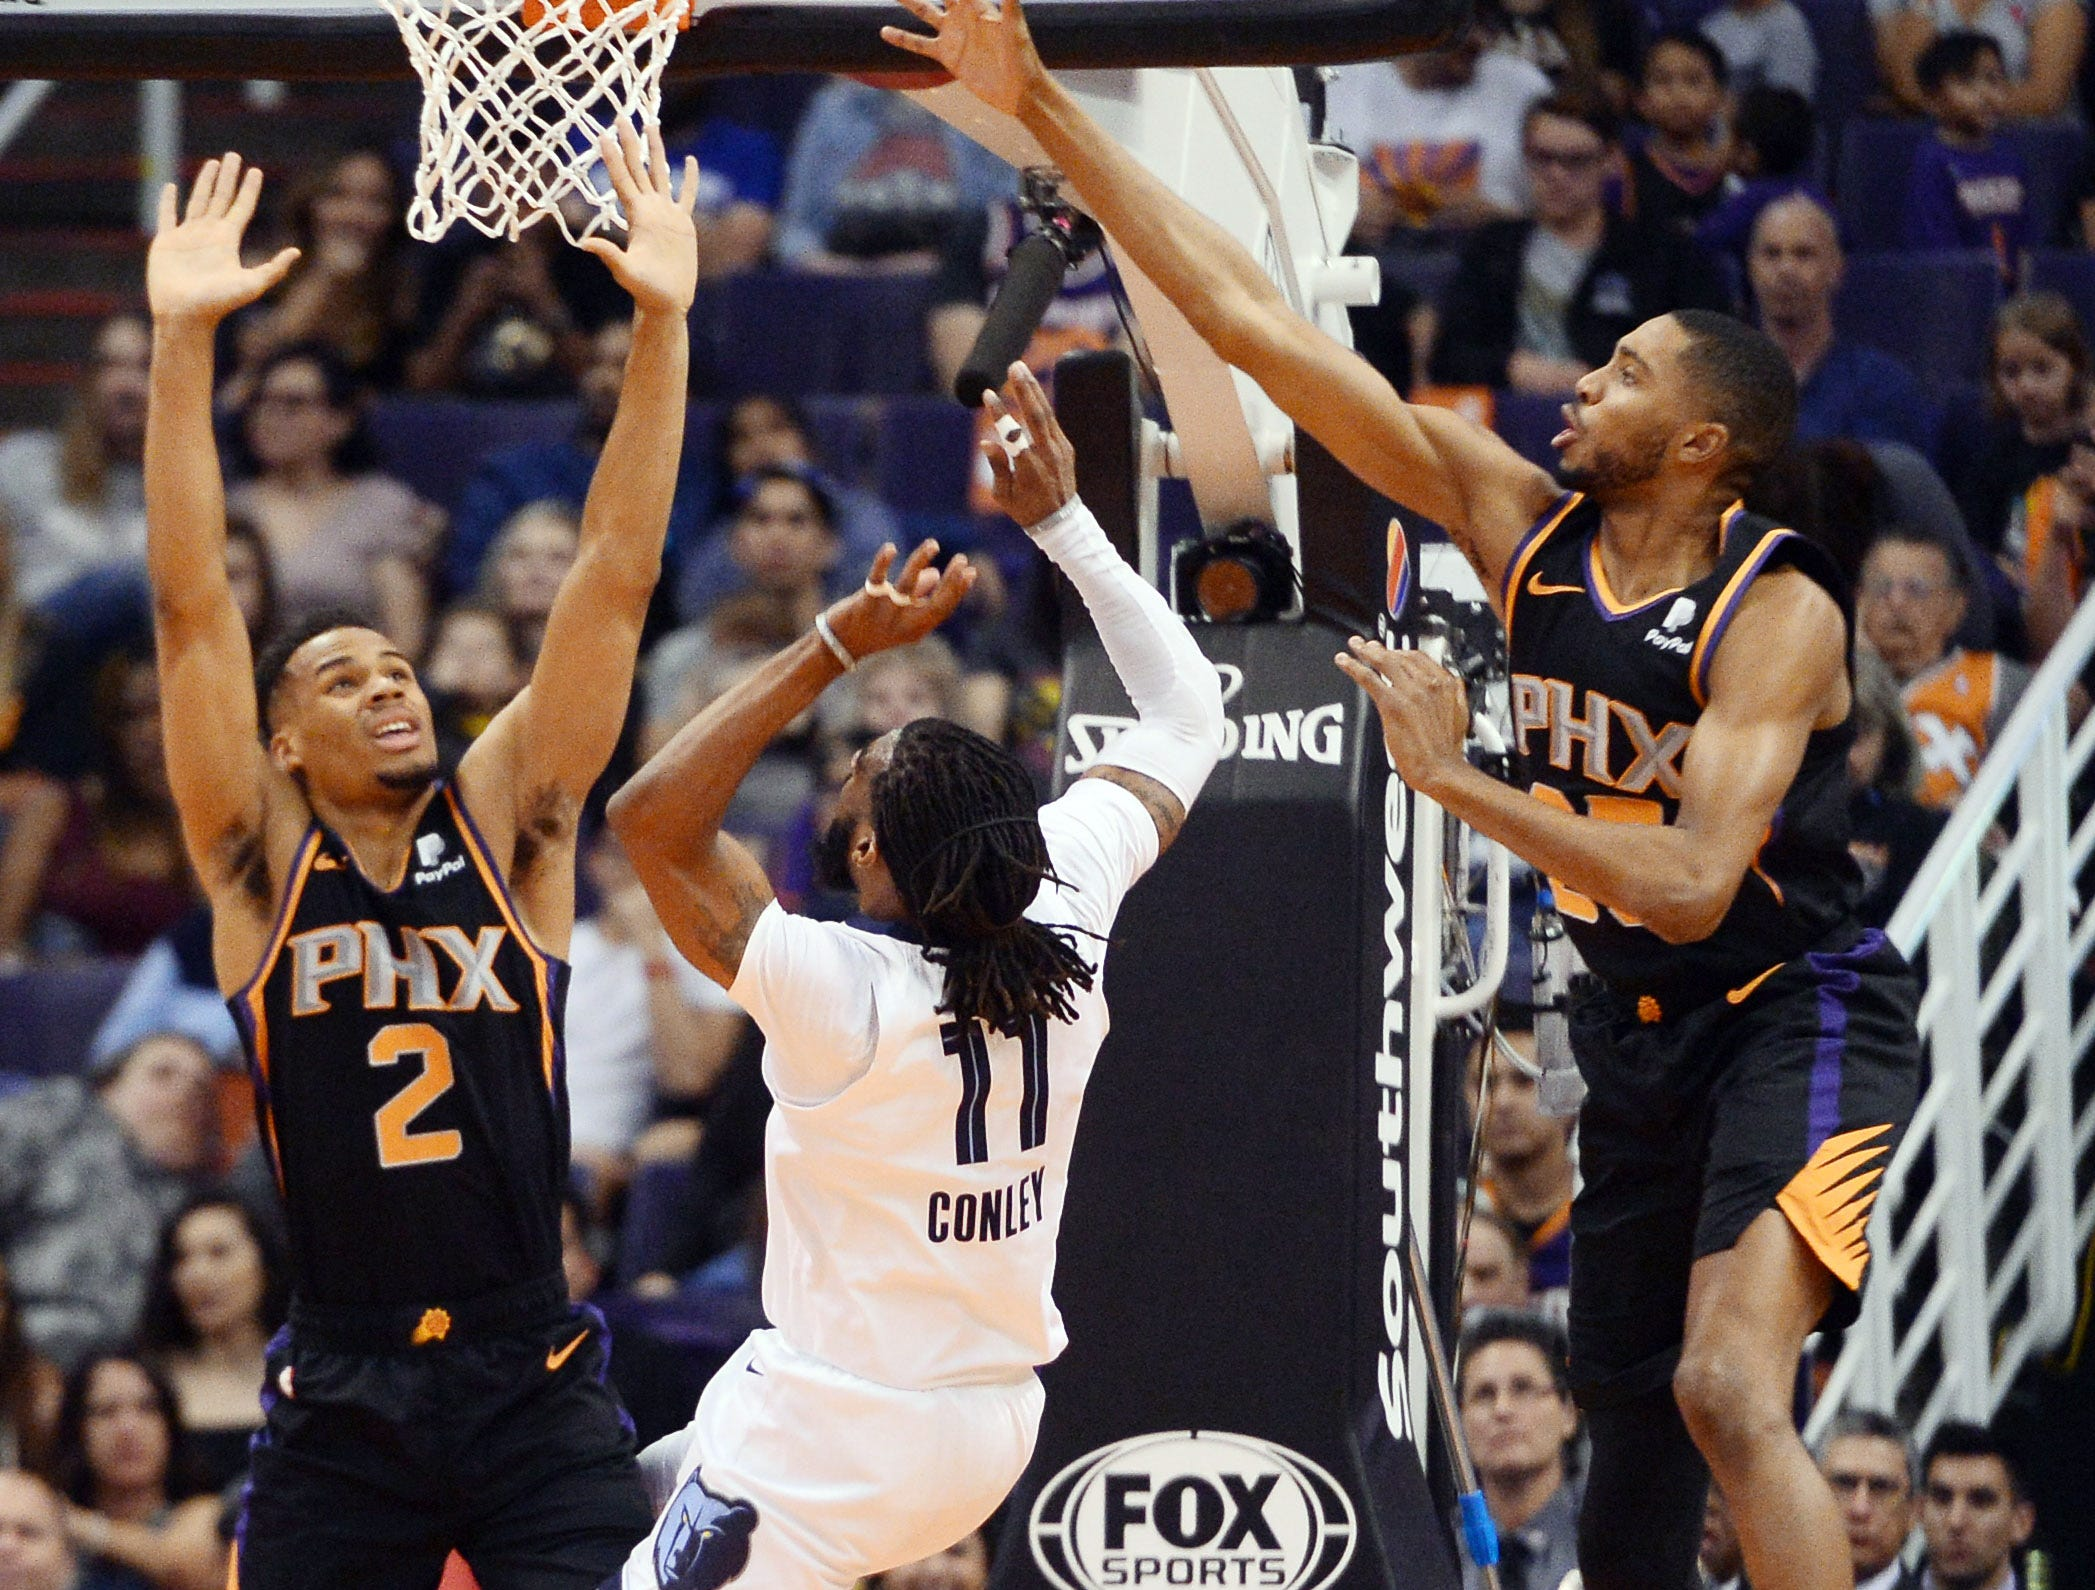 Mar 30, 2019; Phoenix, AZ, USA; Memphis Grizzlies guard Mike Conley (11) shoots over Phoenix Suns guard Elie Okobo (2) and Phoenix Suns forward Mikal Bridges (25) during the first half at Talking Stick Resort Arena. Mandatory Credit: Joe Camporeale-USA TODAY Sports